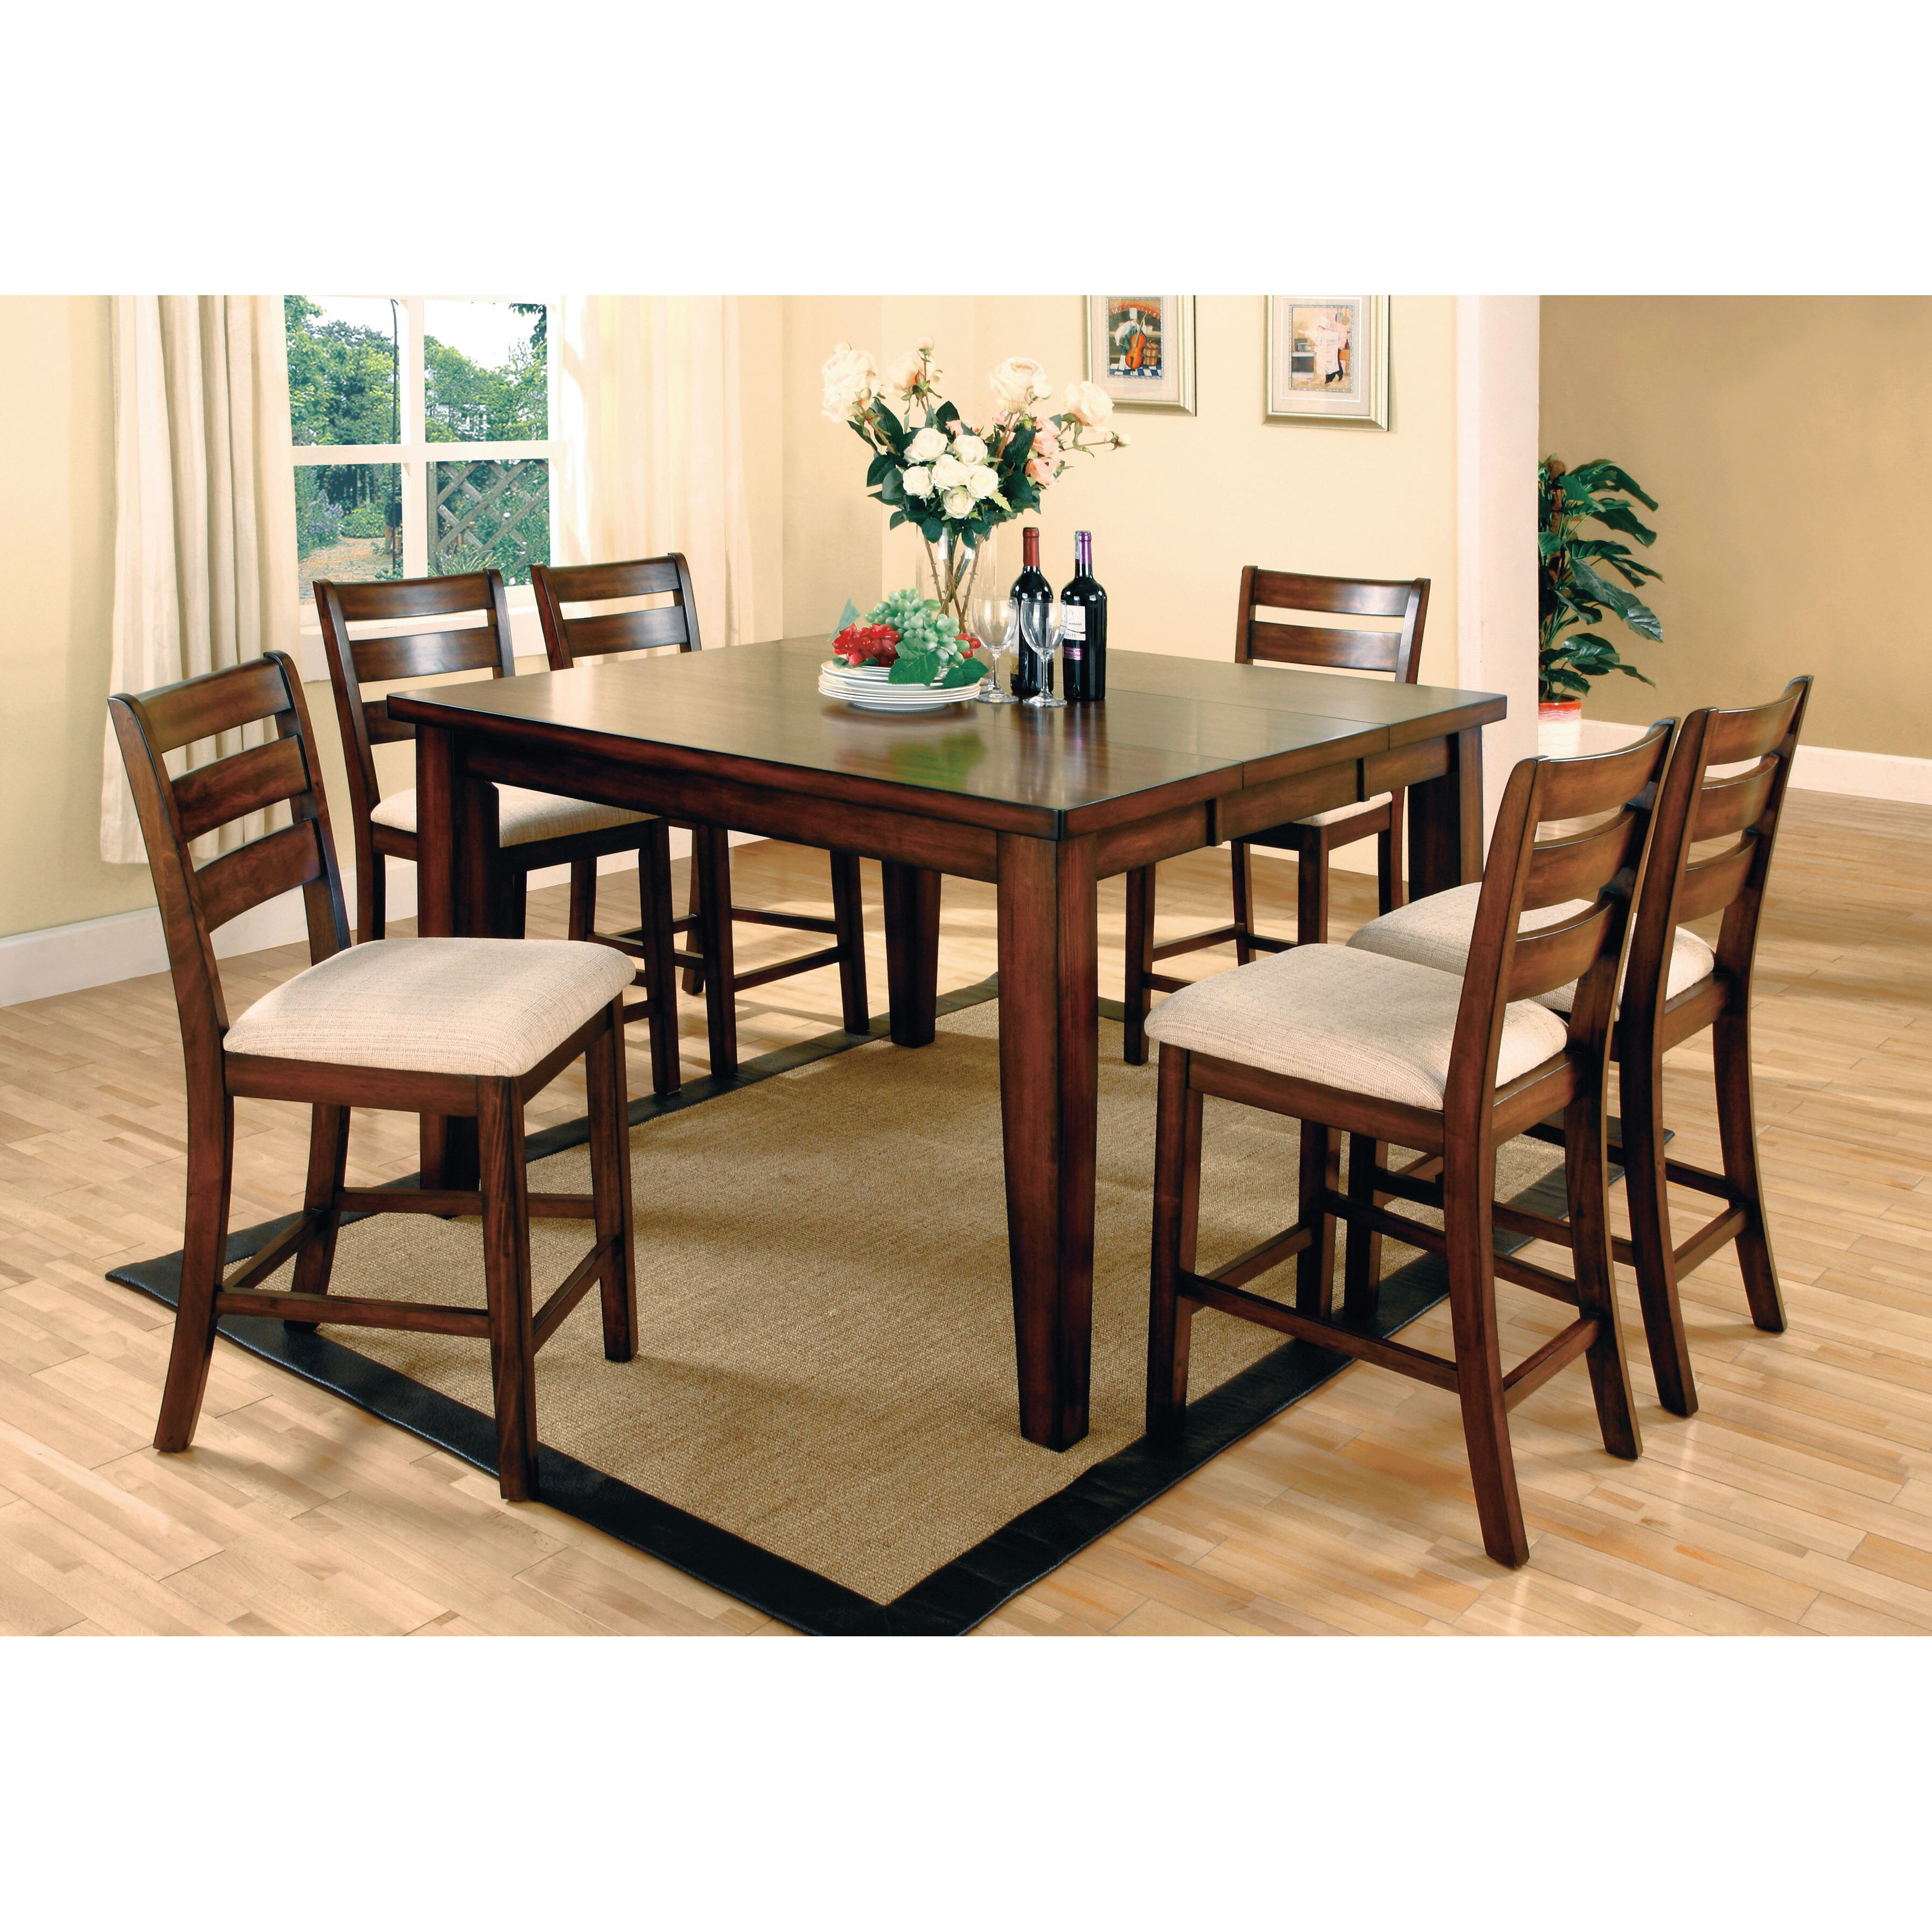 Piece Counter Height Dining Room Sets   Piece Counter - 7 piece counter height dining room sets